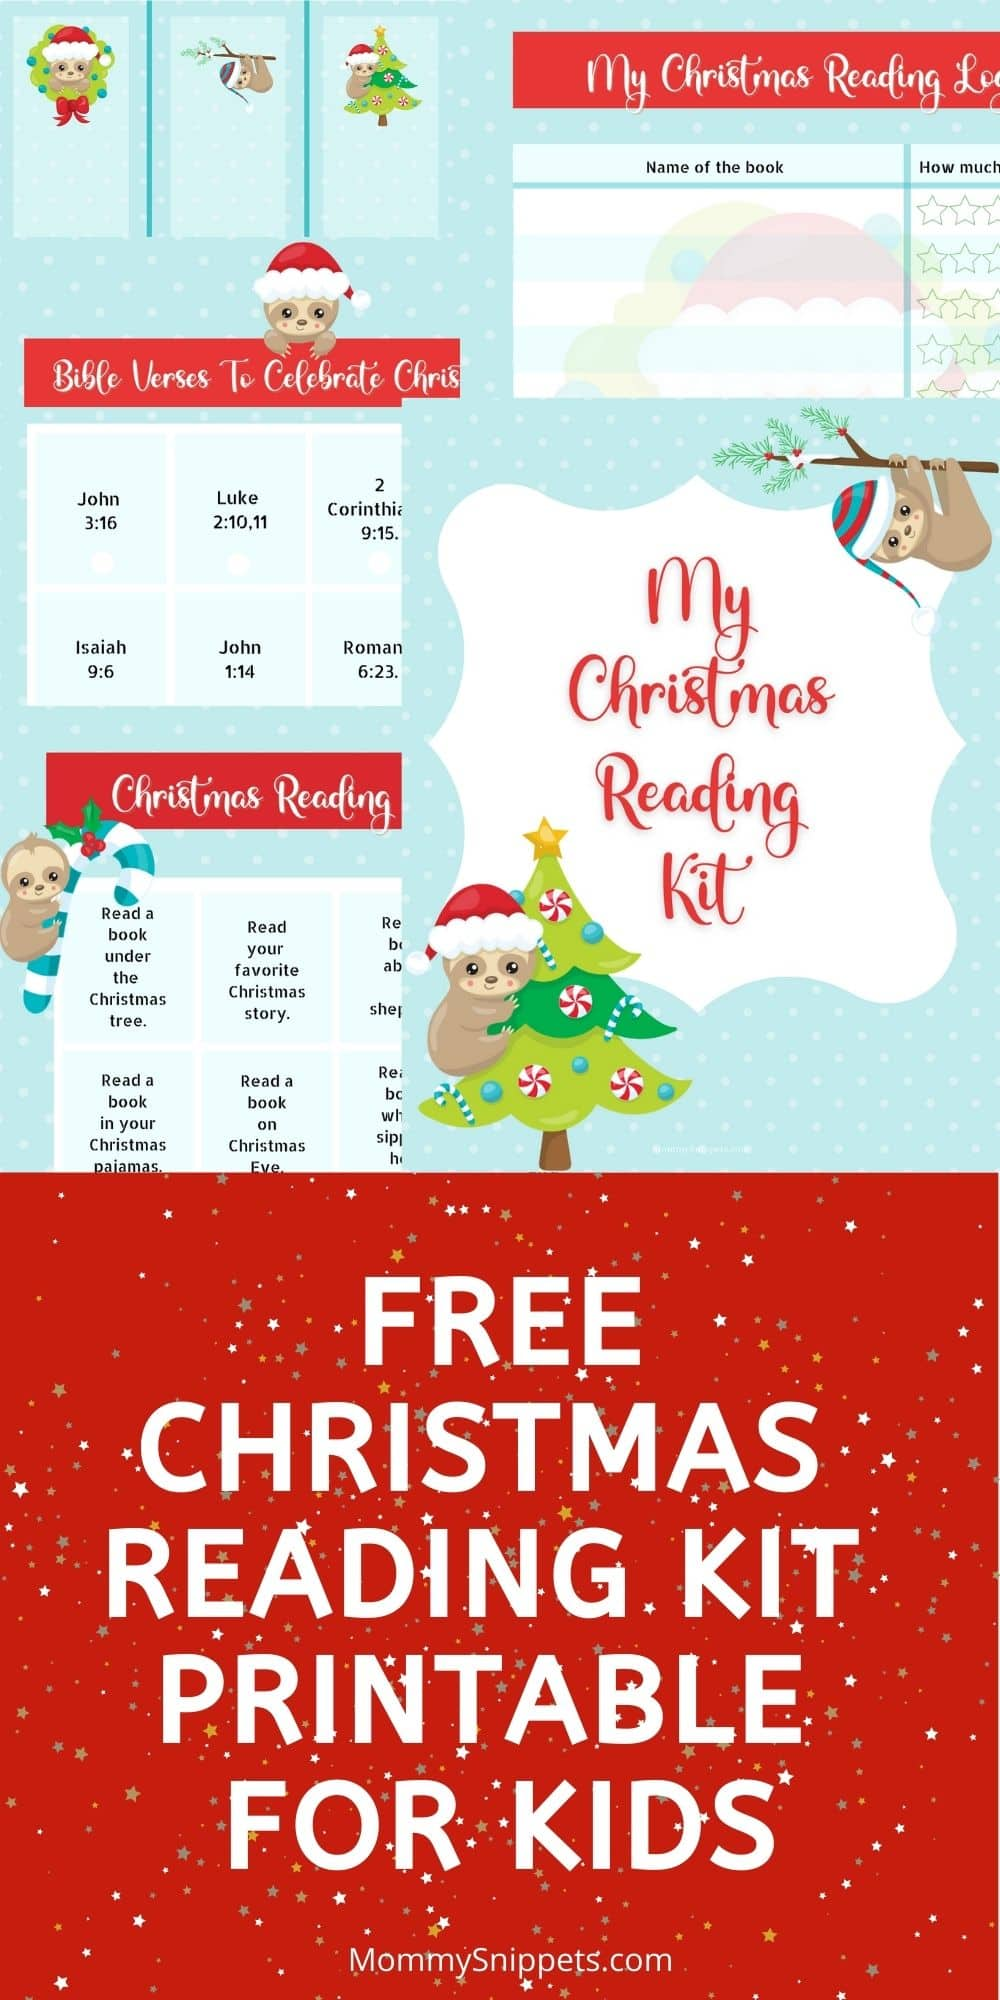 Free Christmas Reading Kit Printable for Kids